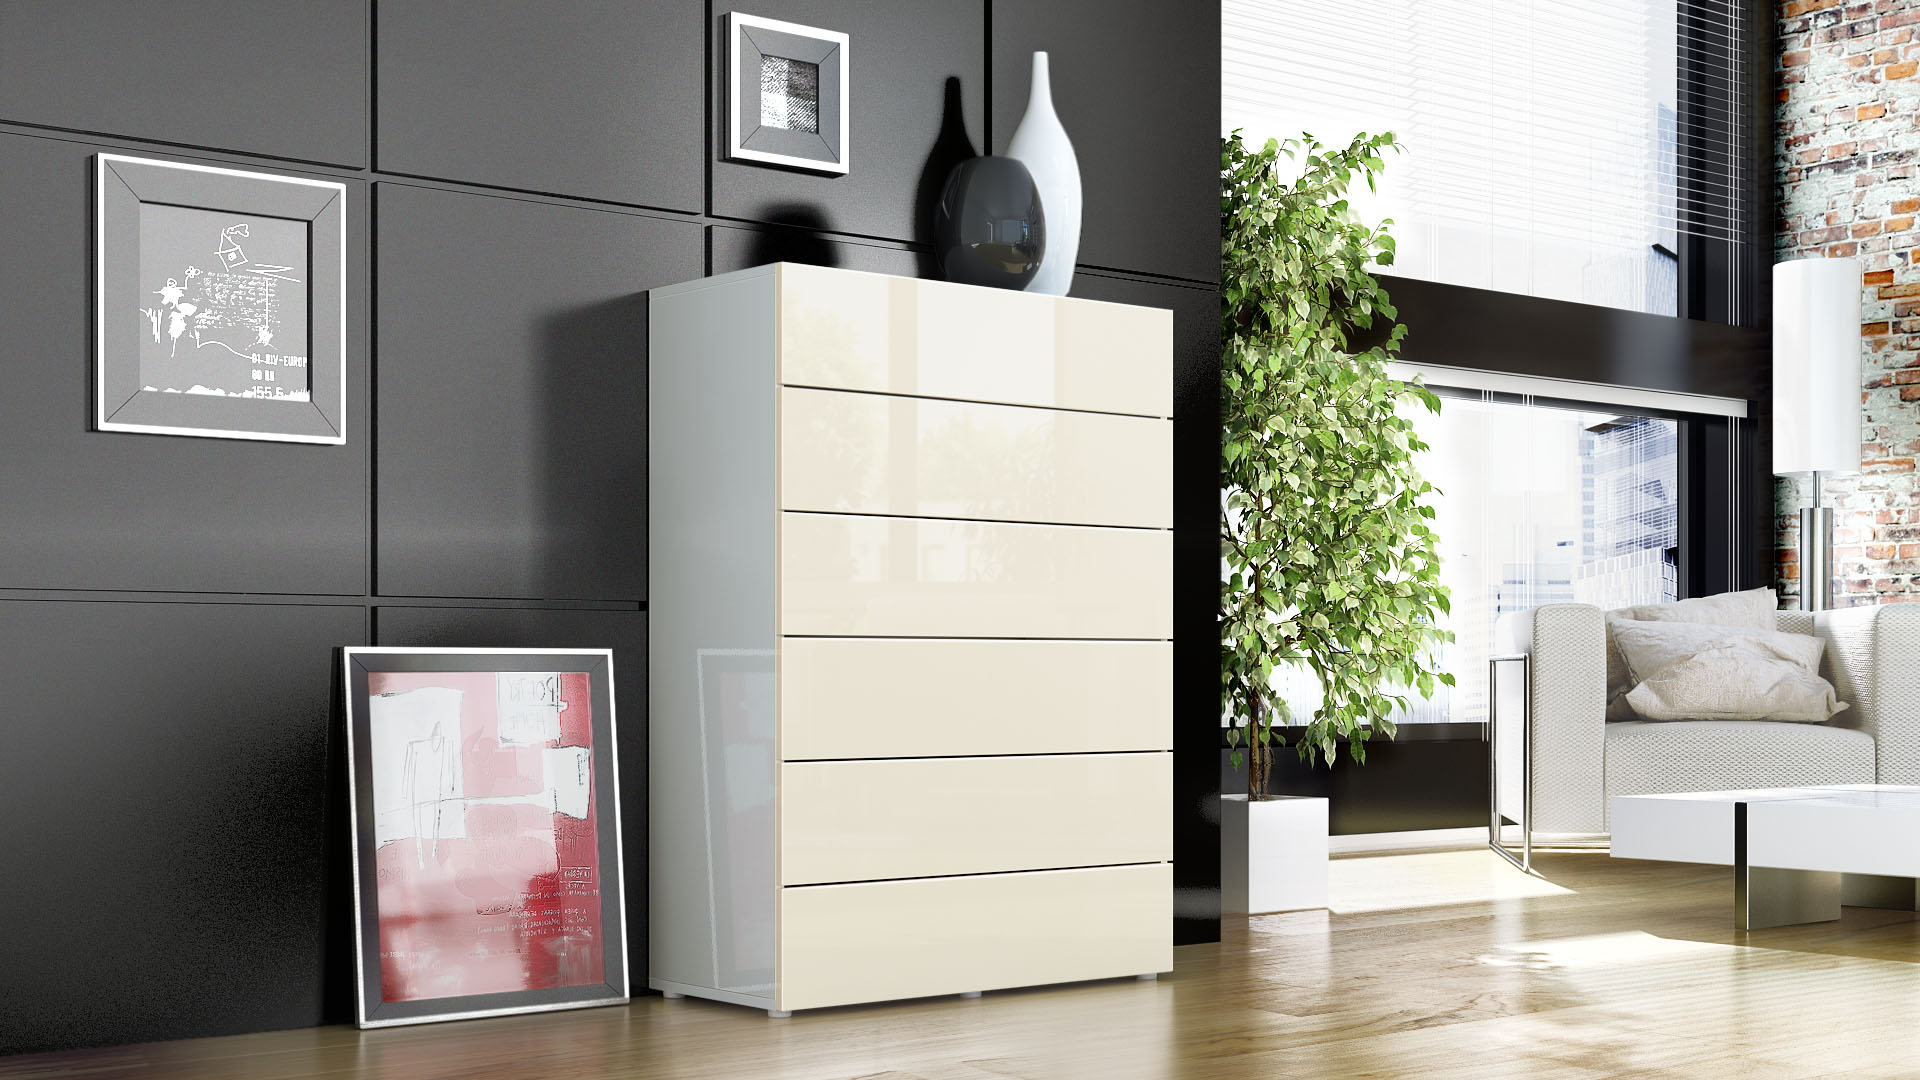 kommode schrank anrichte sideboard massa v3 in wei hochglanz naturt ne ebay. Black Bedroom Furniture Sets. Home Design Ideas